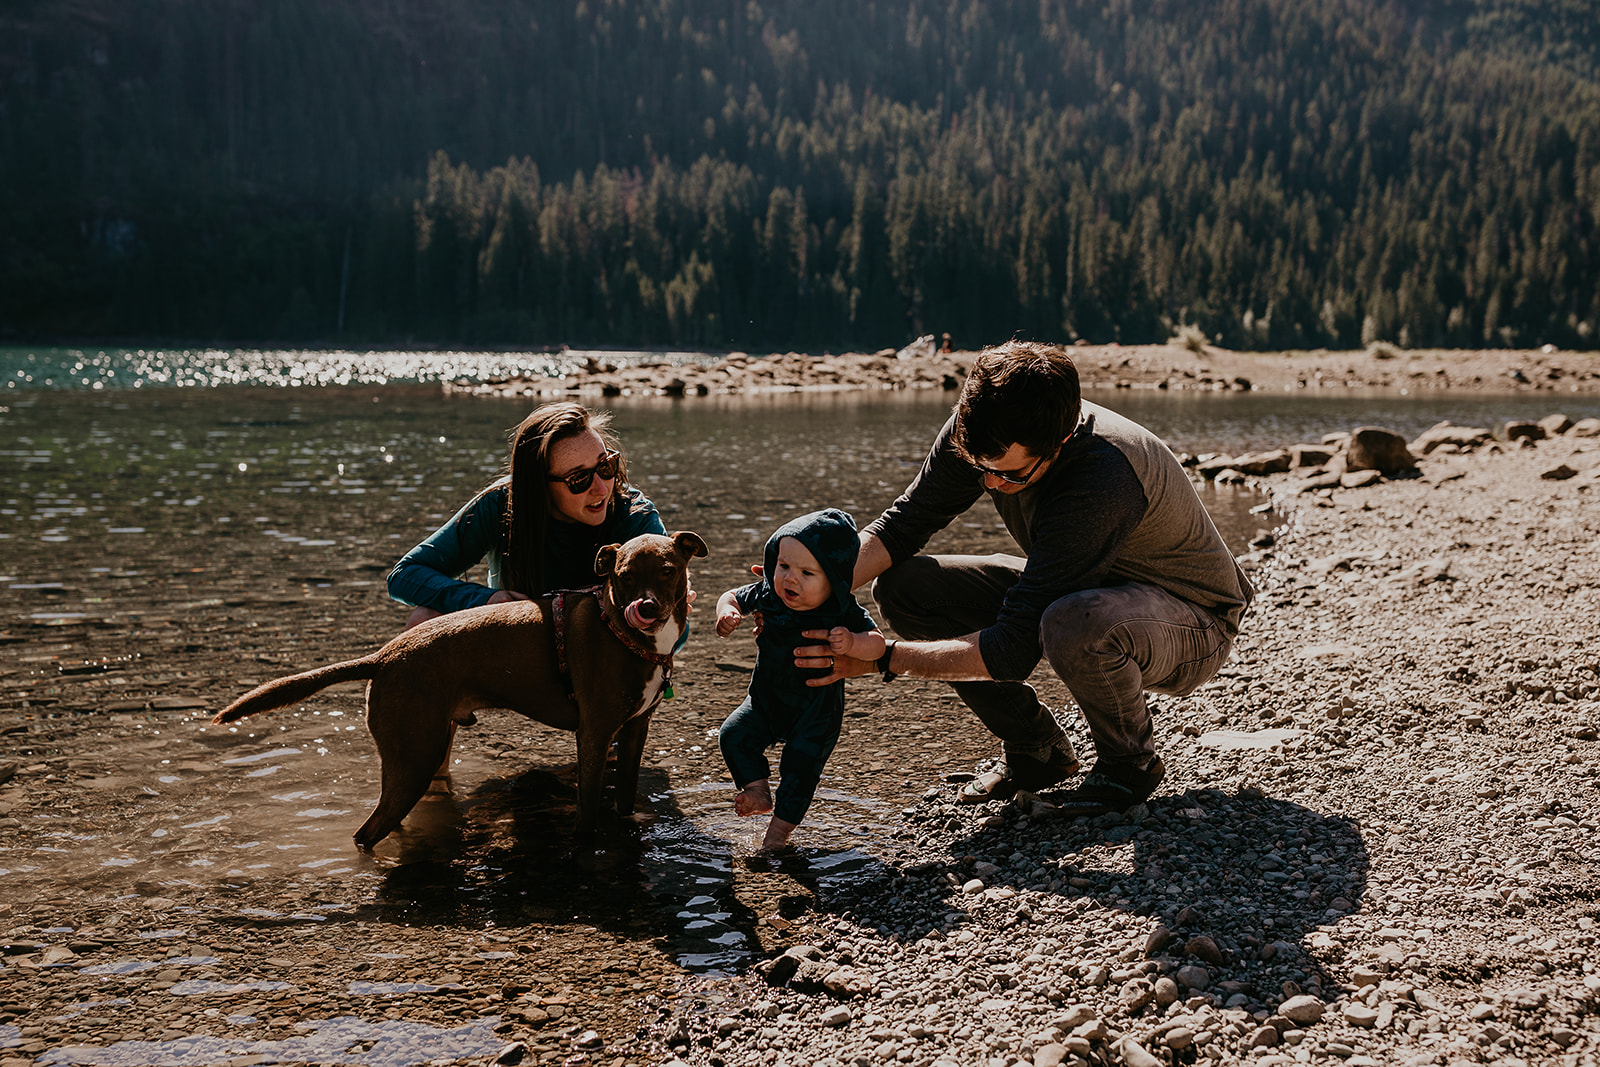 kachess-lake-camping-family-portraits-megan-gallagher-photography_(280_of_335).jpg